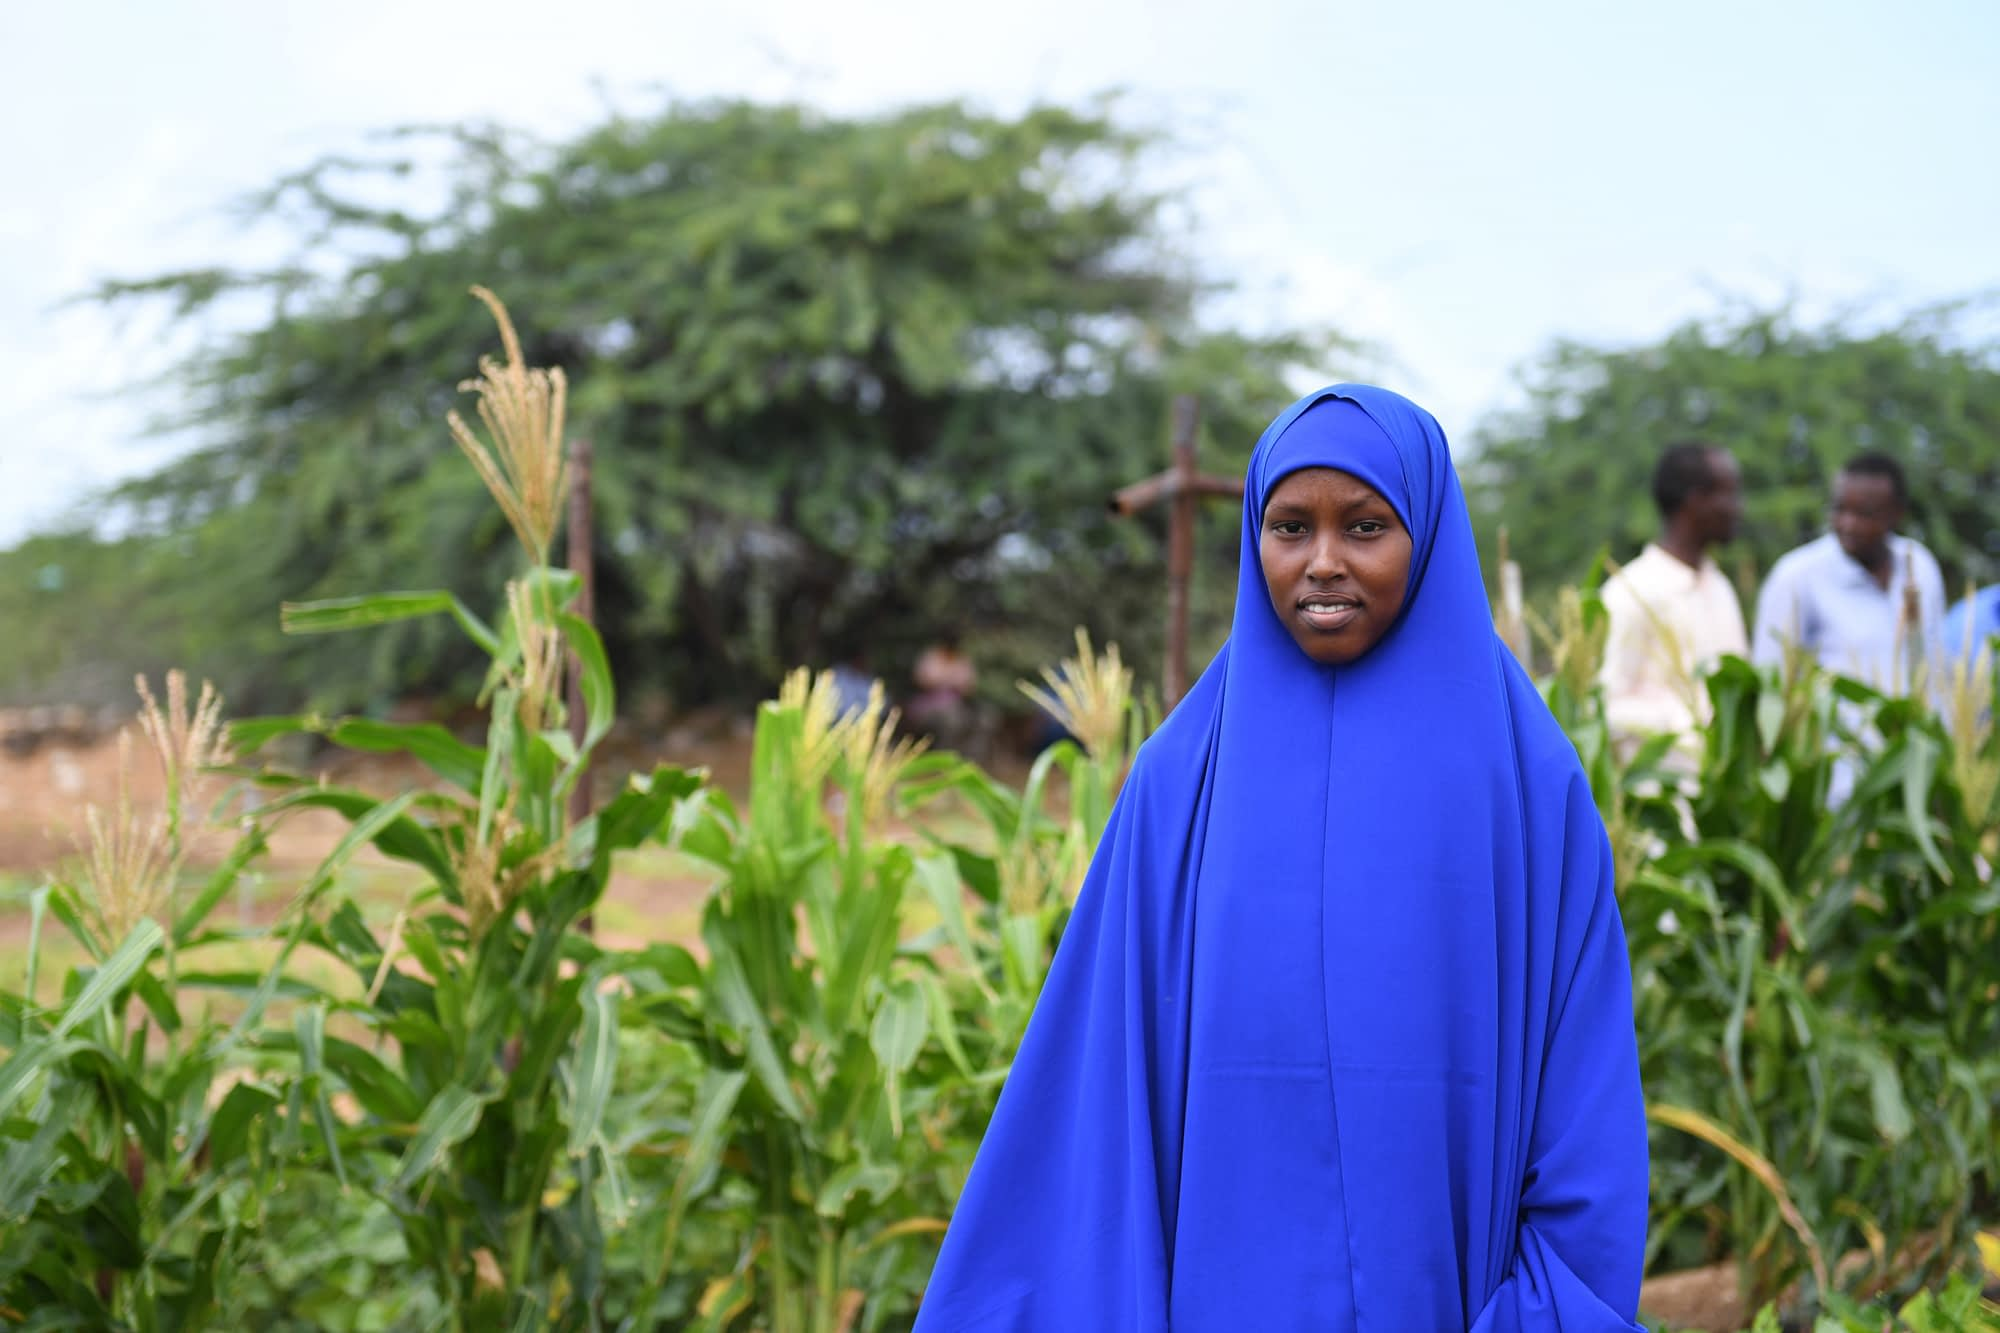 Somali woman in field.